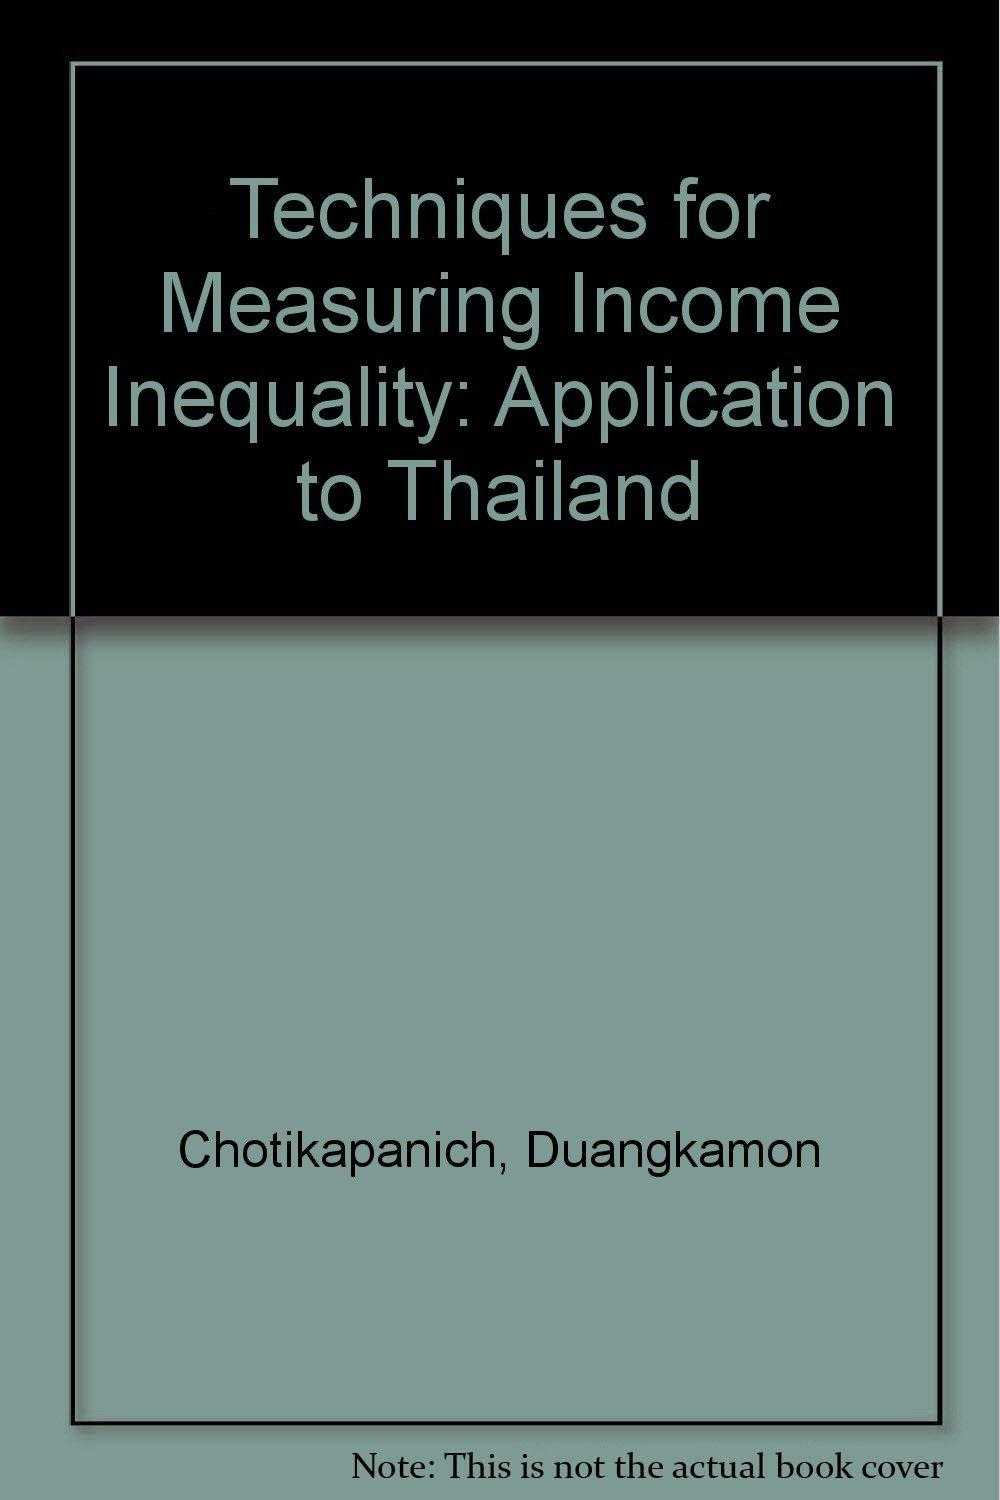 CHOTIKAPANICH, DUANGKAMON - Techniques for Measuring Income Inequality: Application to Thailand [Hardcove.